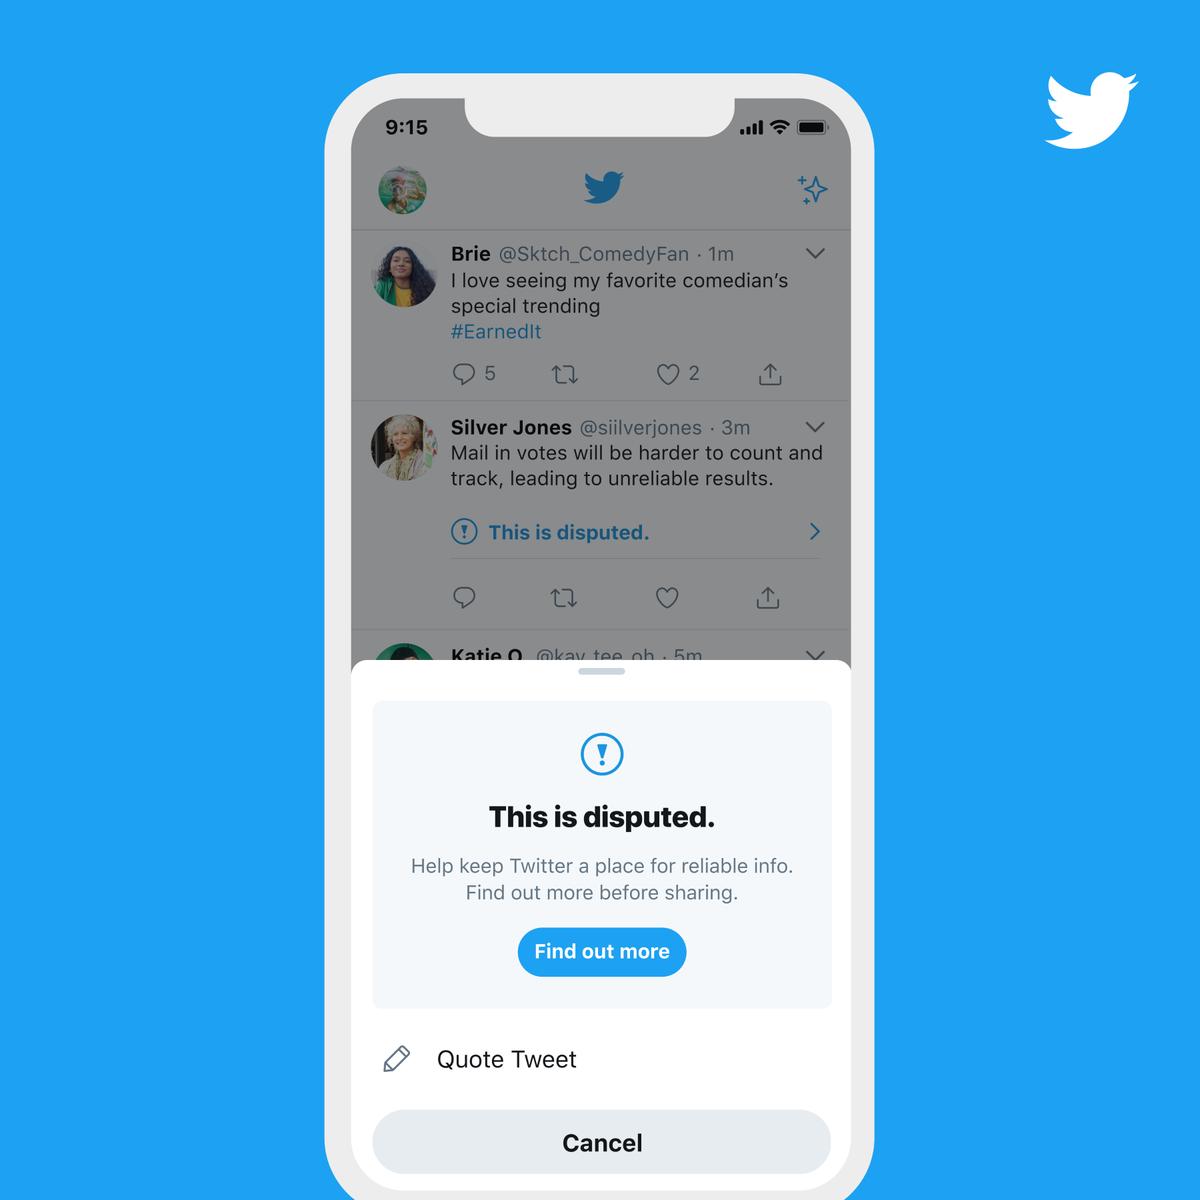 Twitter will label misleading tweets